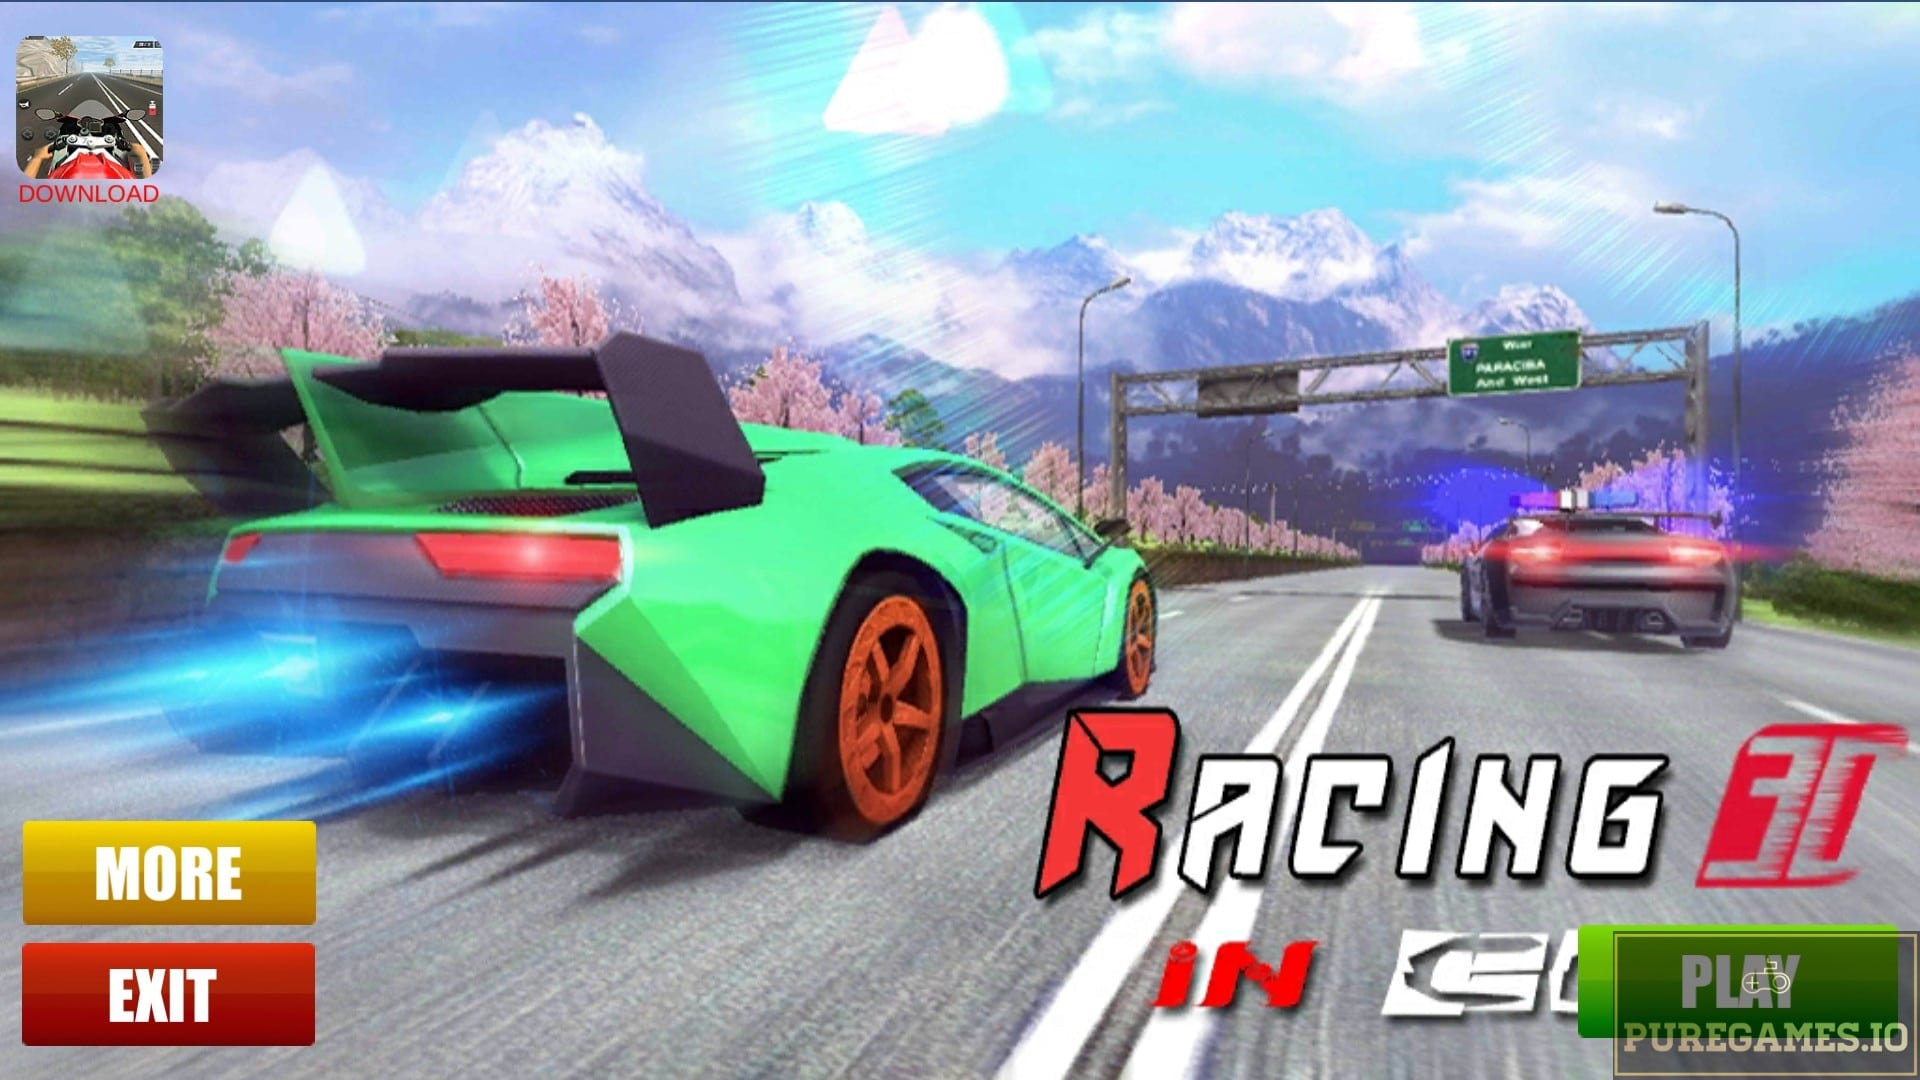 Download Racing In Car 3D APK - For Android 10